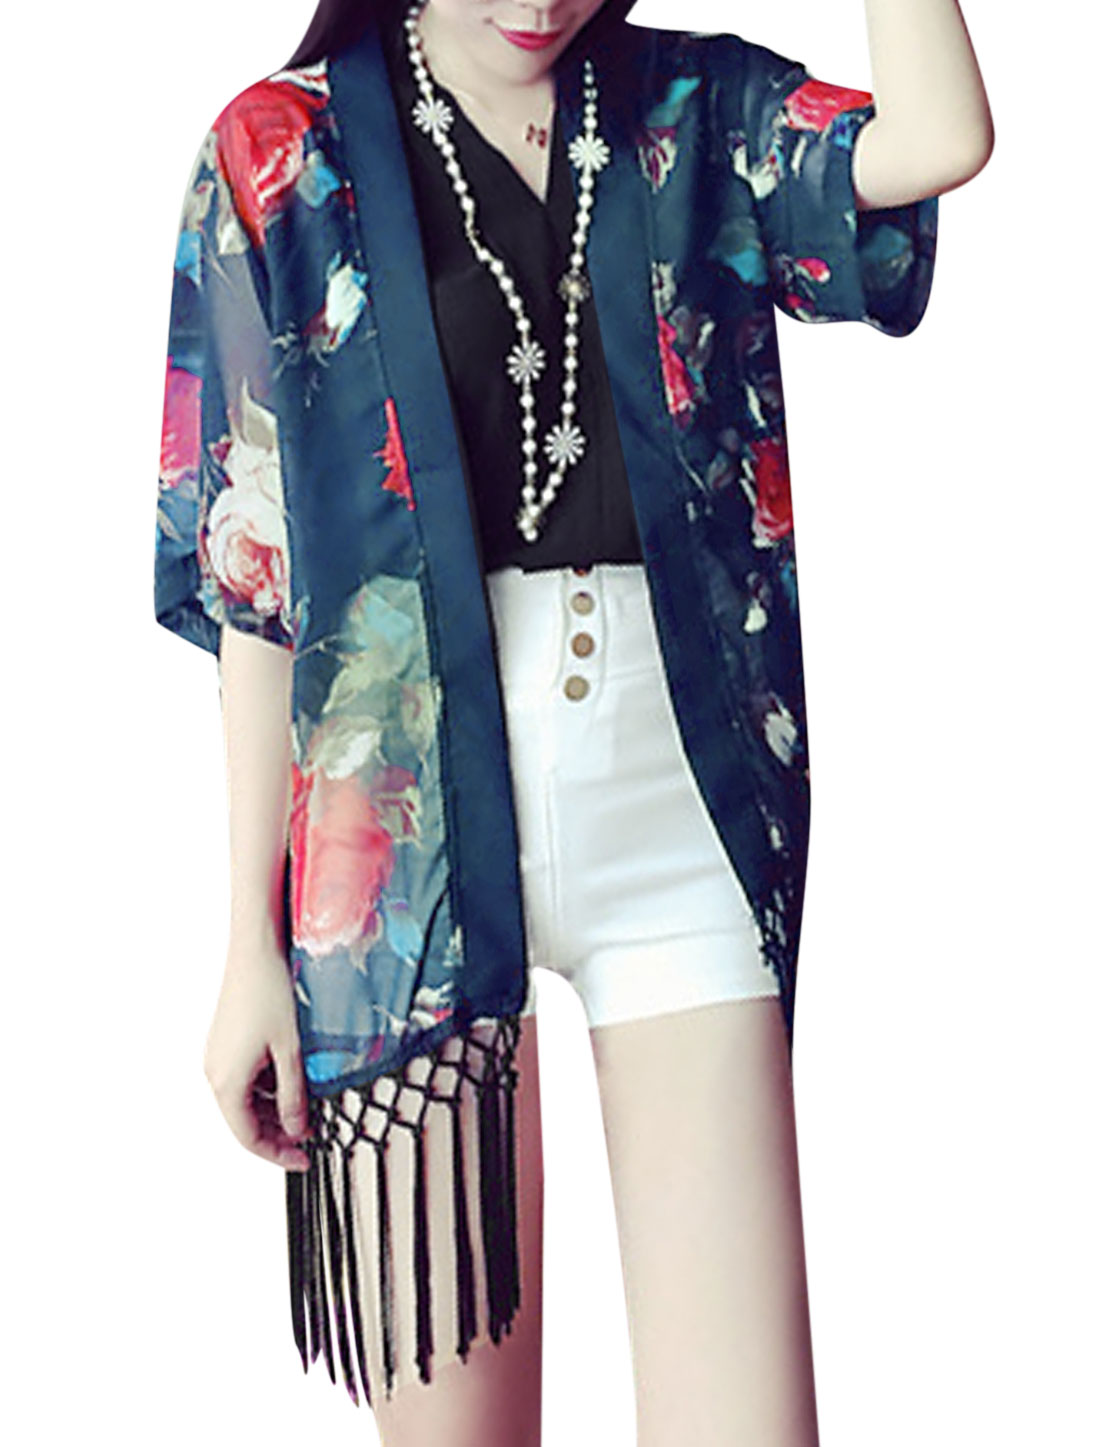 Woman Floral Prints Front Opening 3/4 Sleeves Fringed Kimono Dark Blue XS